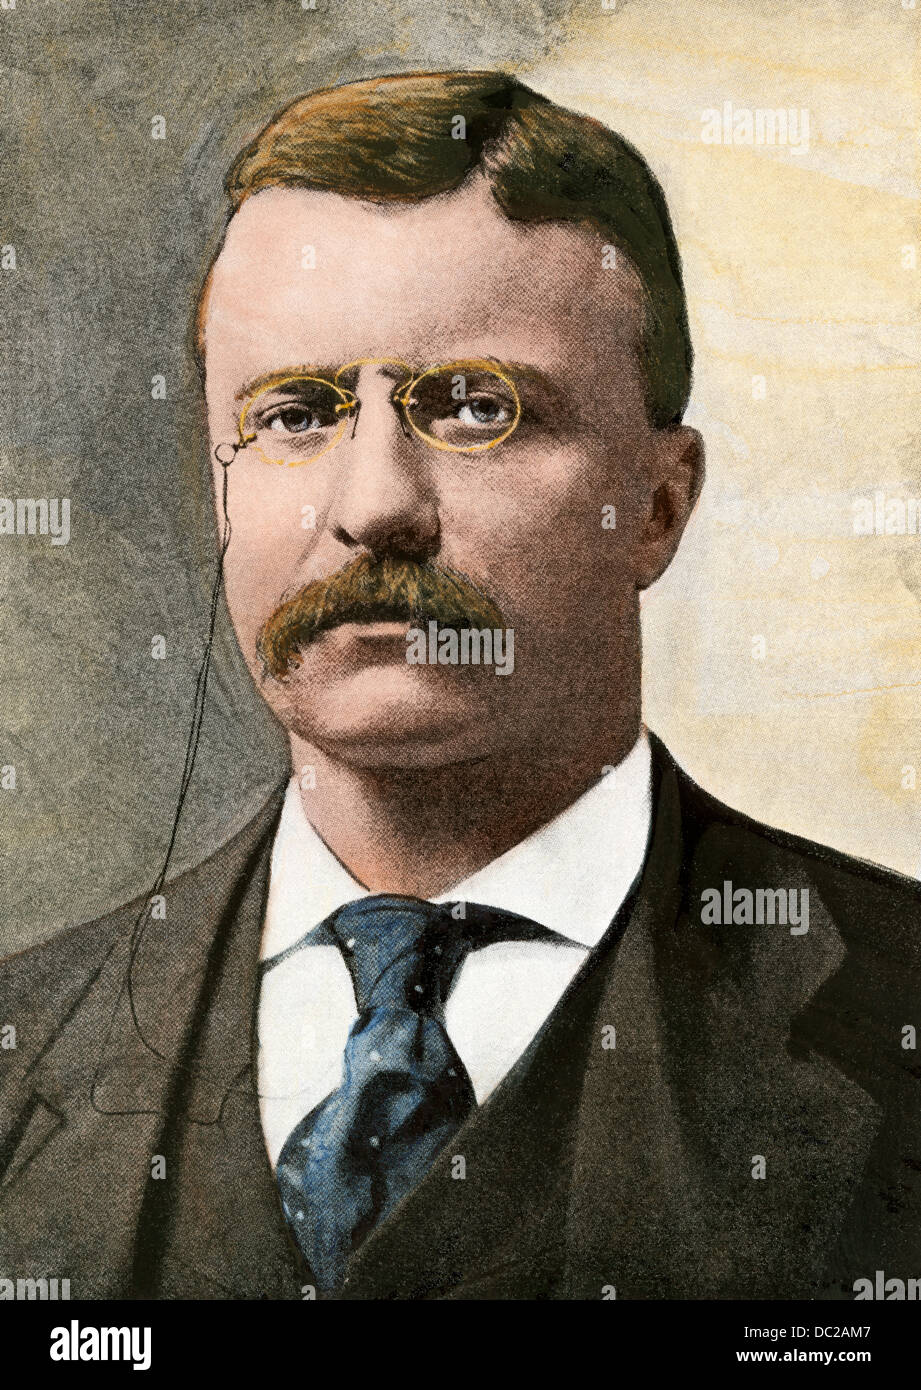 pince nez stock photos pince nez stock images alamy us president theodore roosevelt stock image